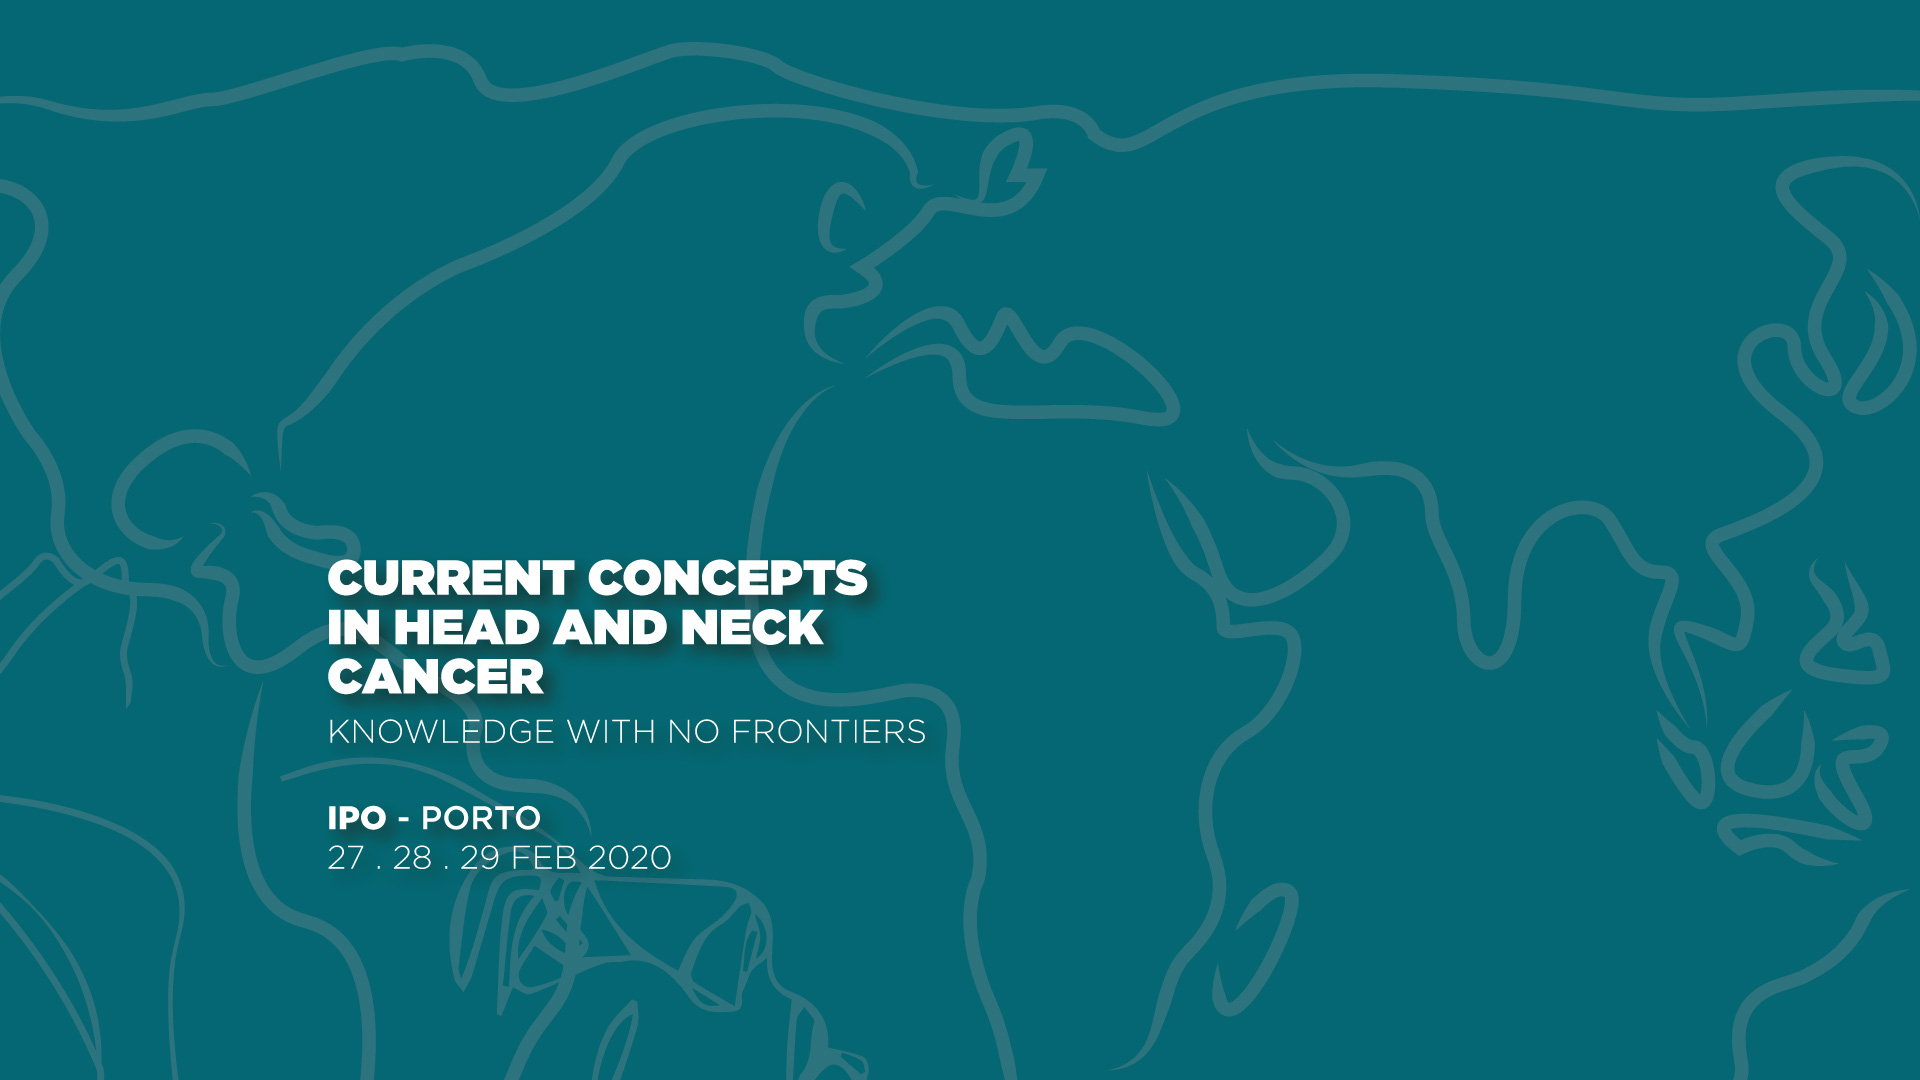 Current Concepts in Head and Neck Cancer 2020